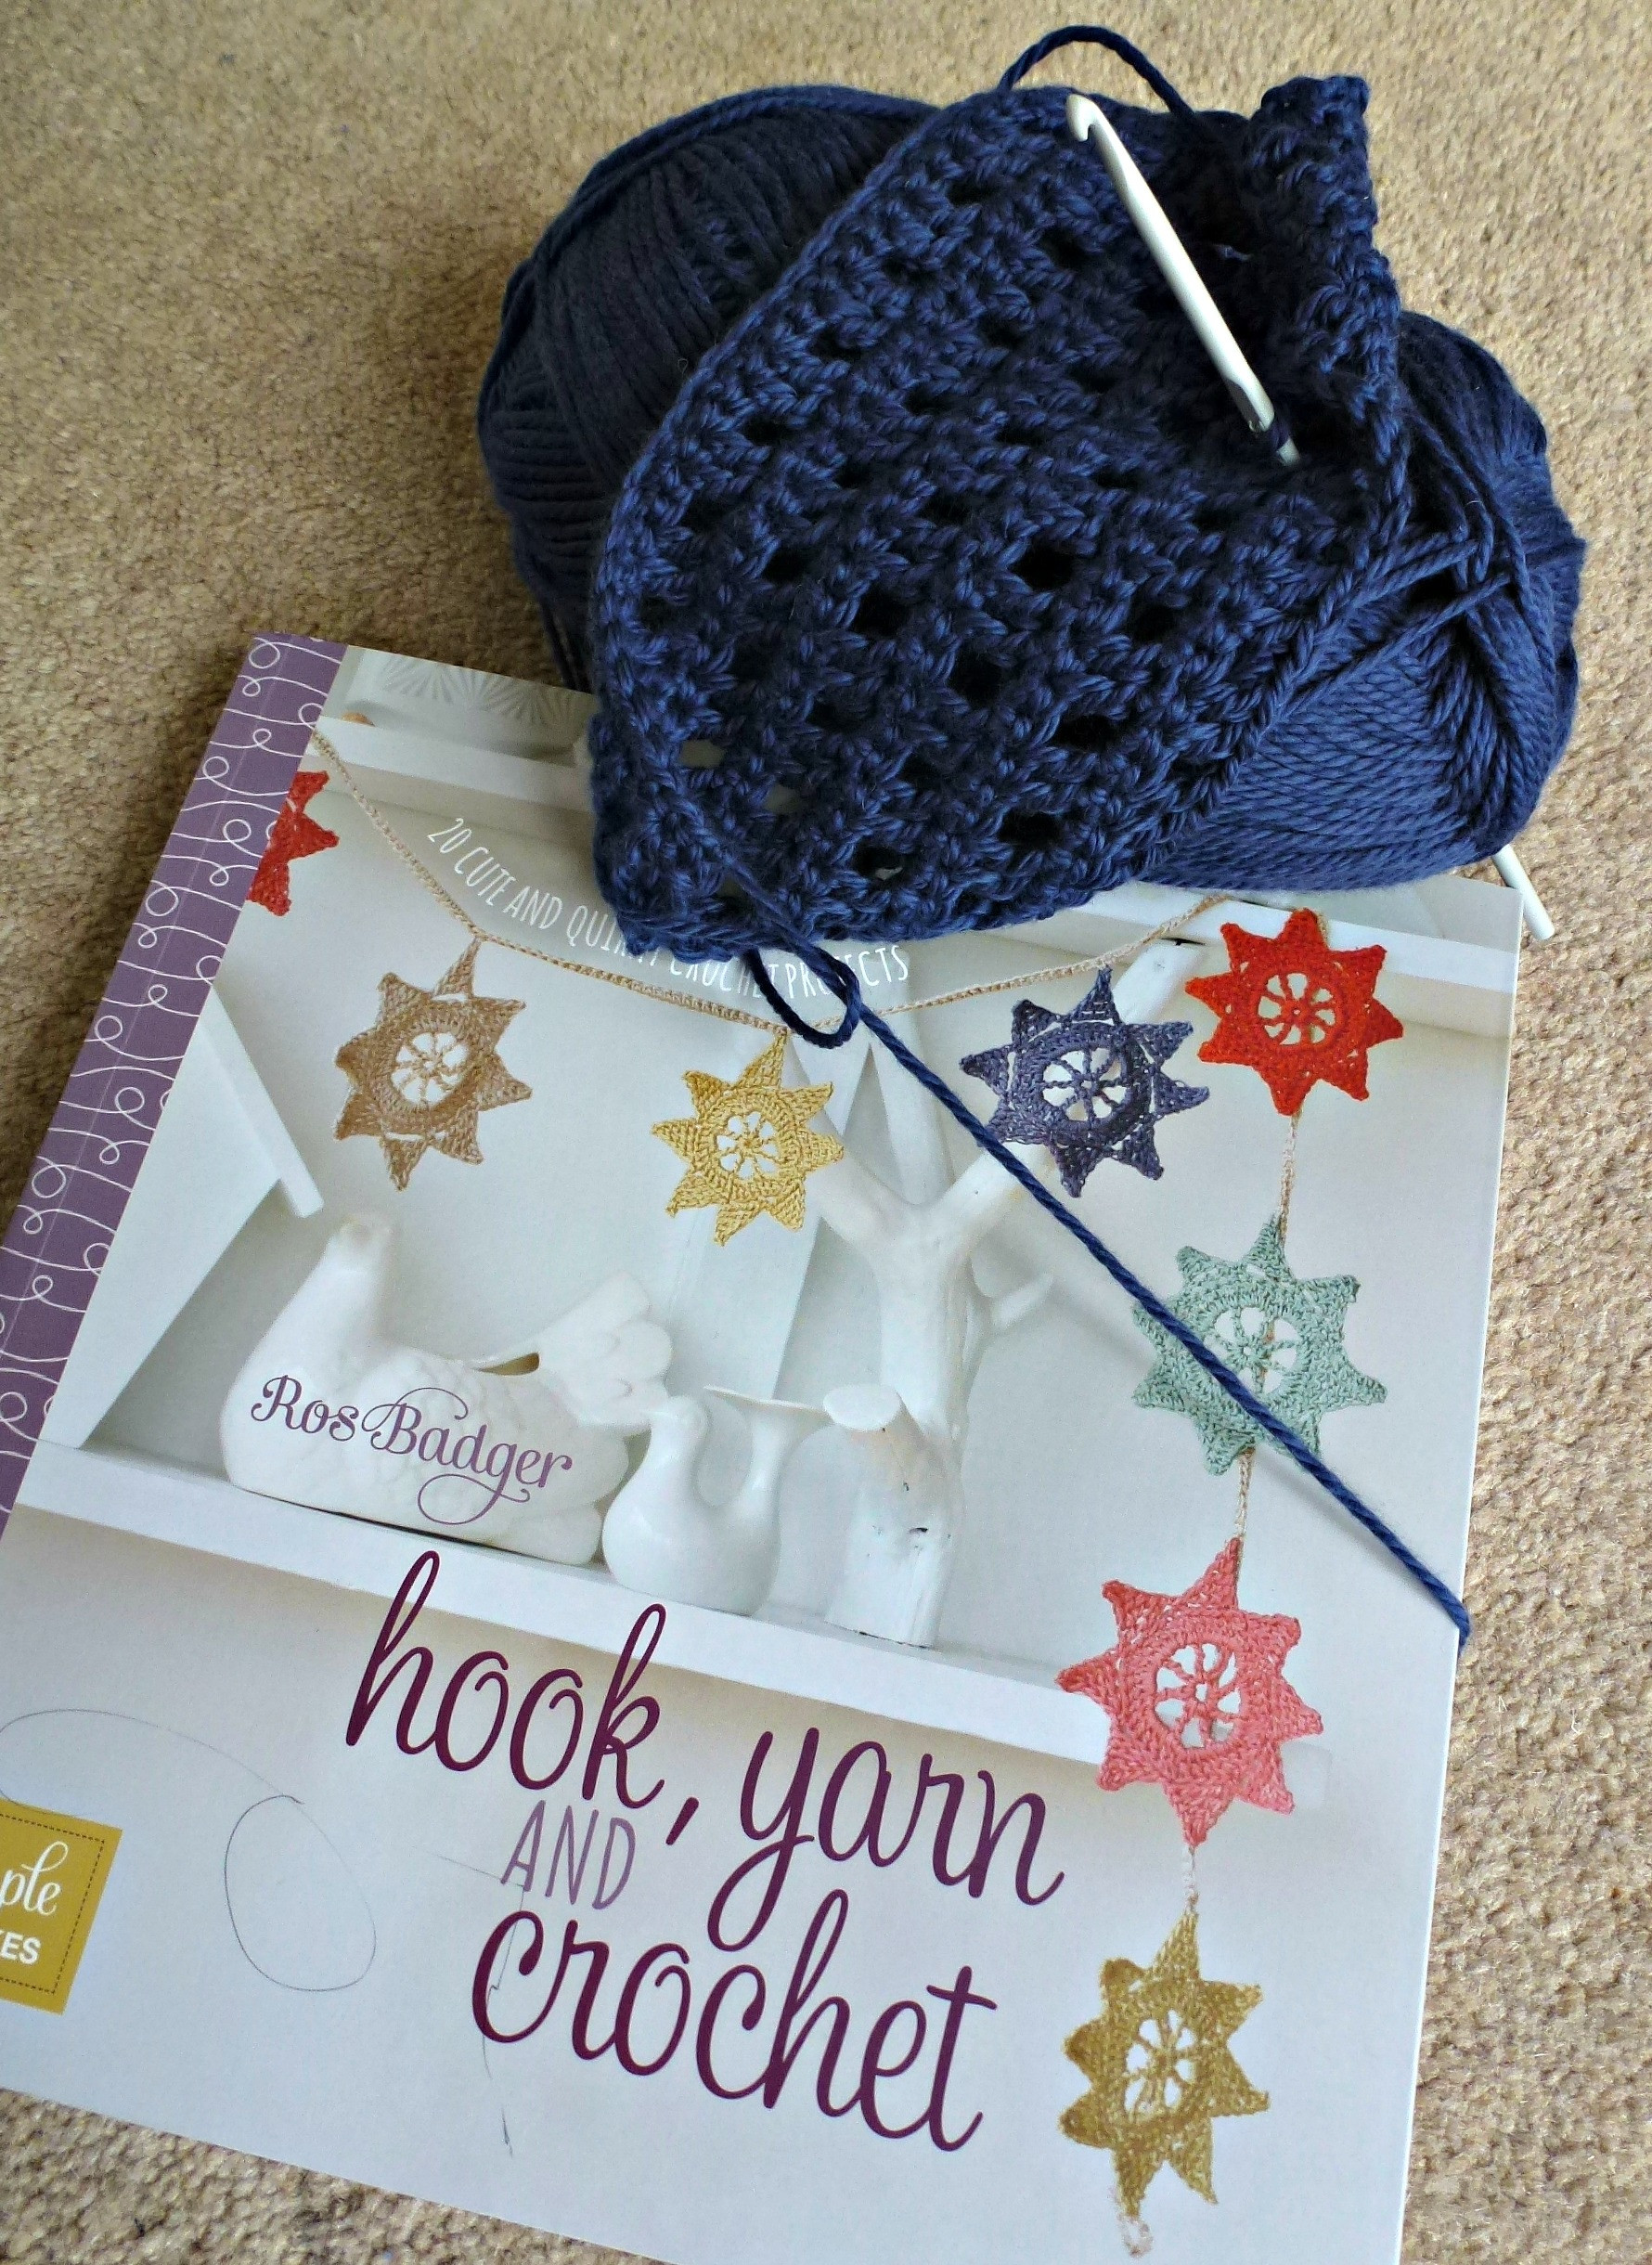 Crochet Hook and Yarn Fresh some Random Crafting and Baby Ve Ables – Zeens and Roger Of Superb 44 Images Crochet Hook and Yarn